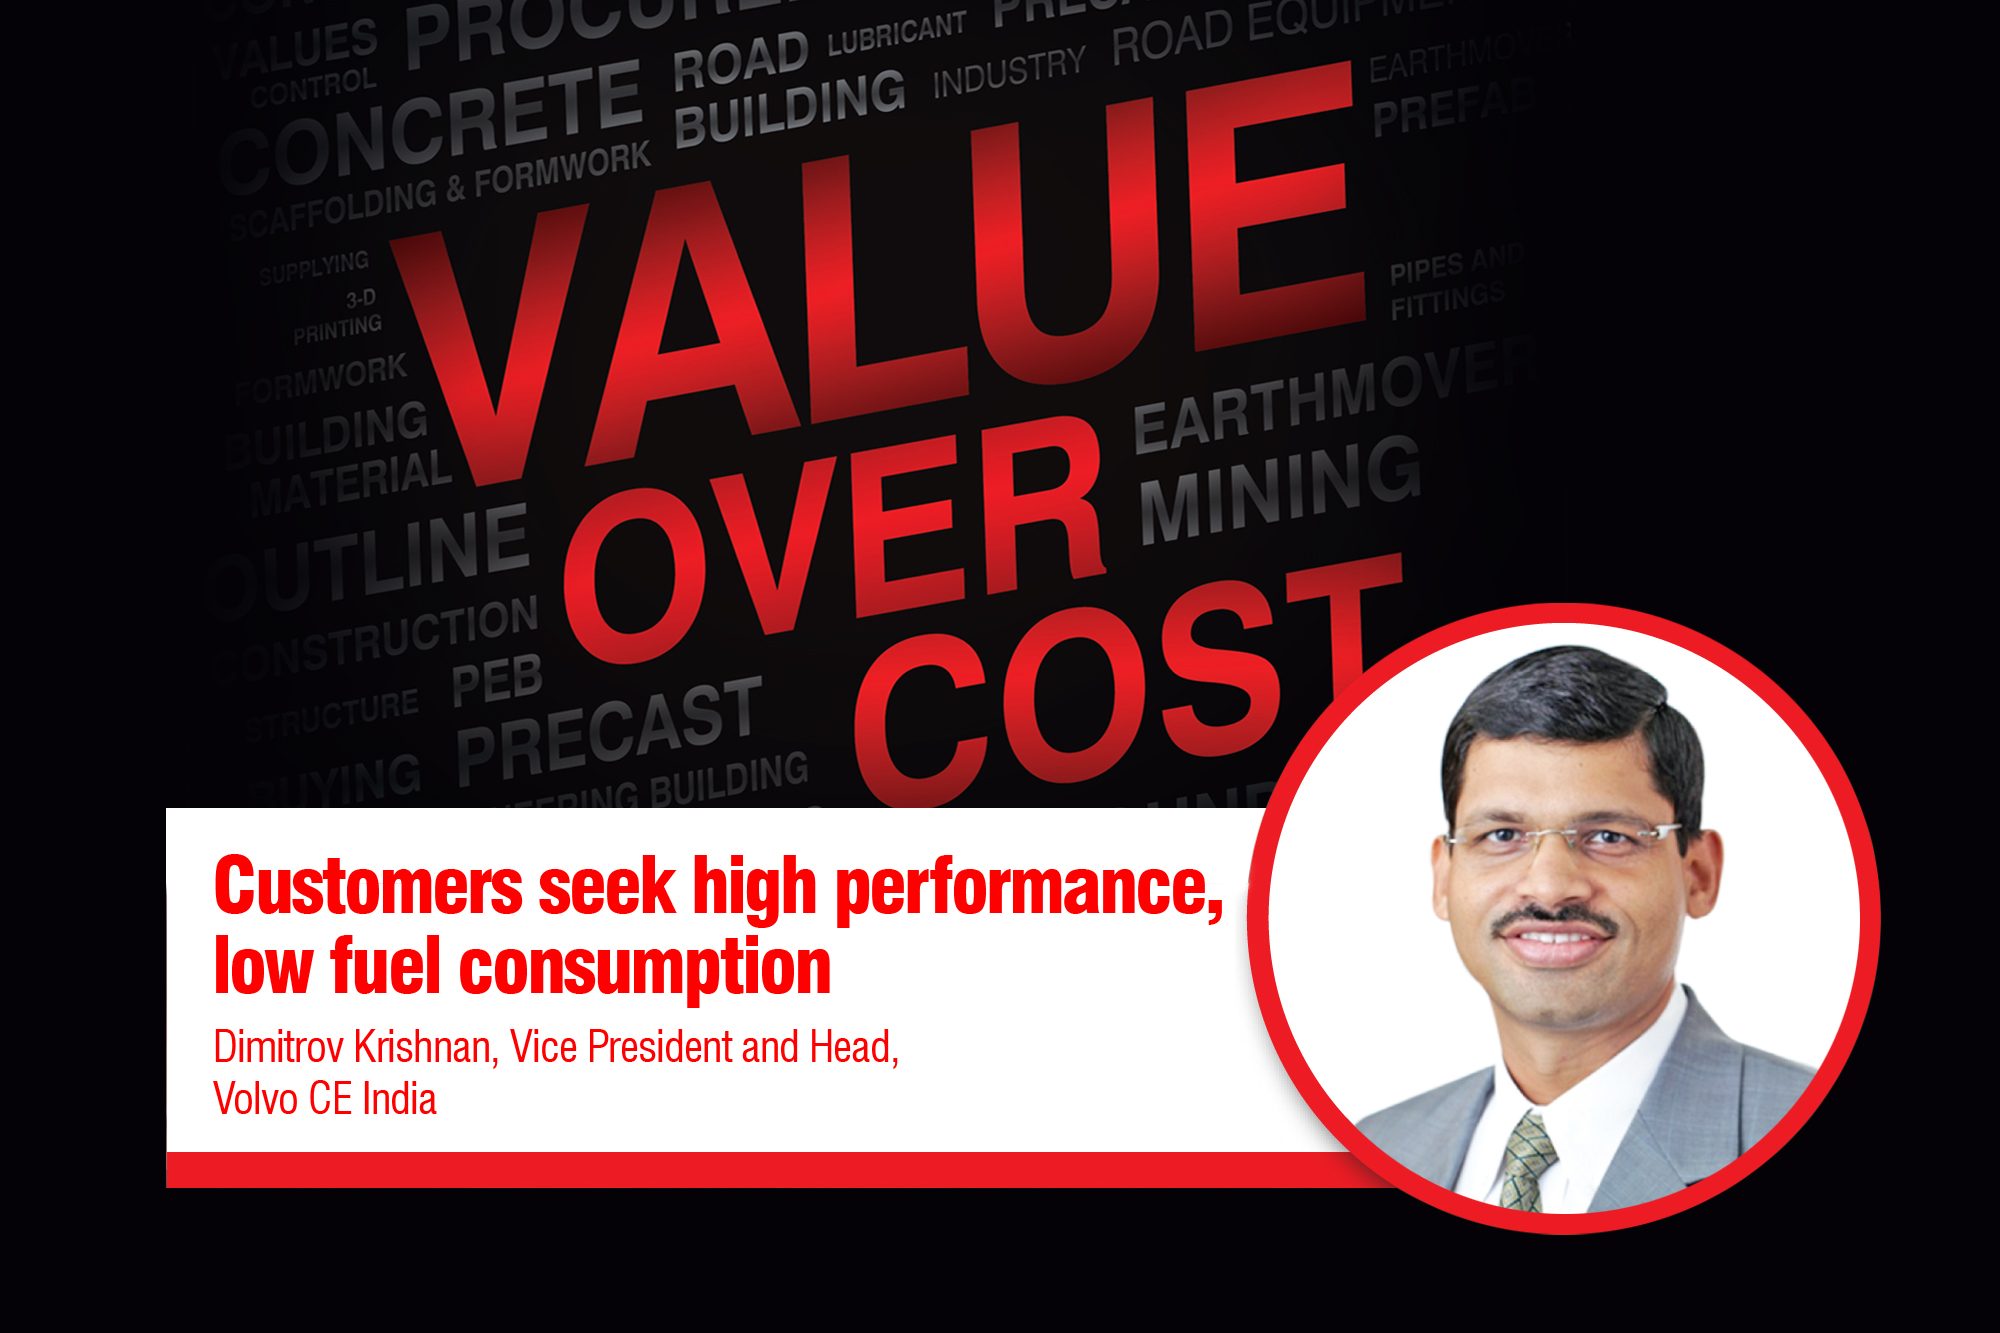 Customers seek high performance, low fuel consumption